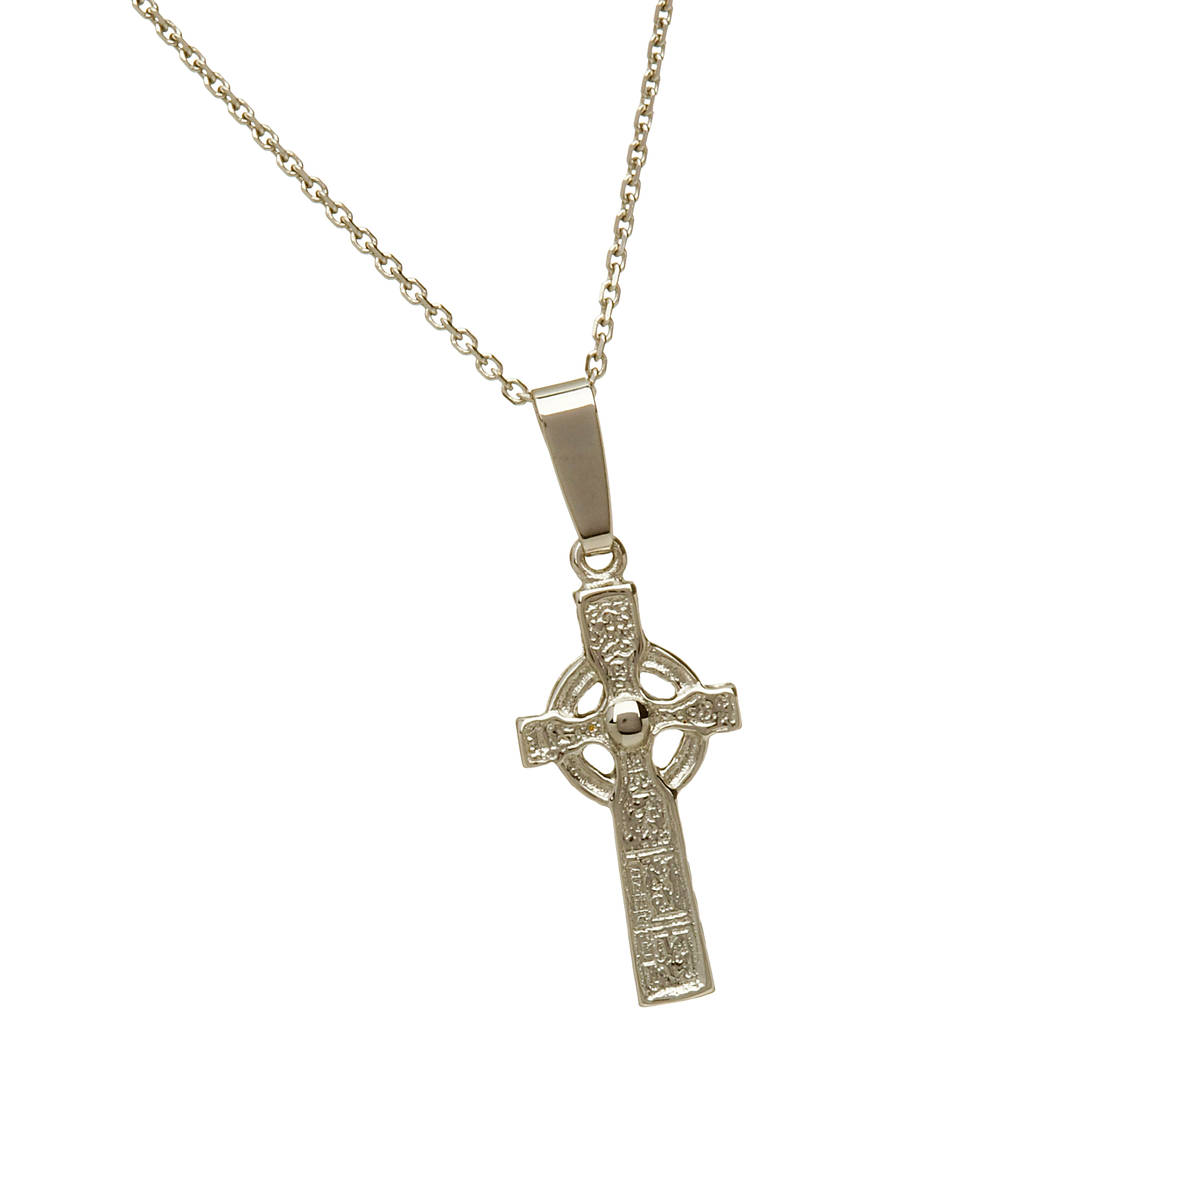 \n10 carat white gold reproduction Duleek cross pendant\n which is also available in yellow or rose gold if you request it in our comment box on checkout.